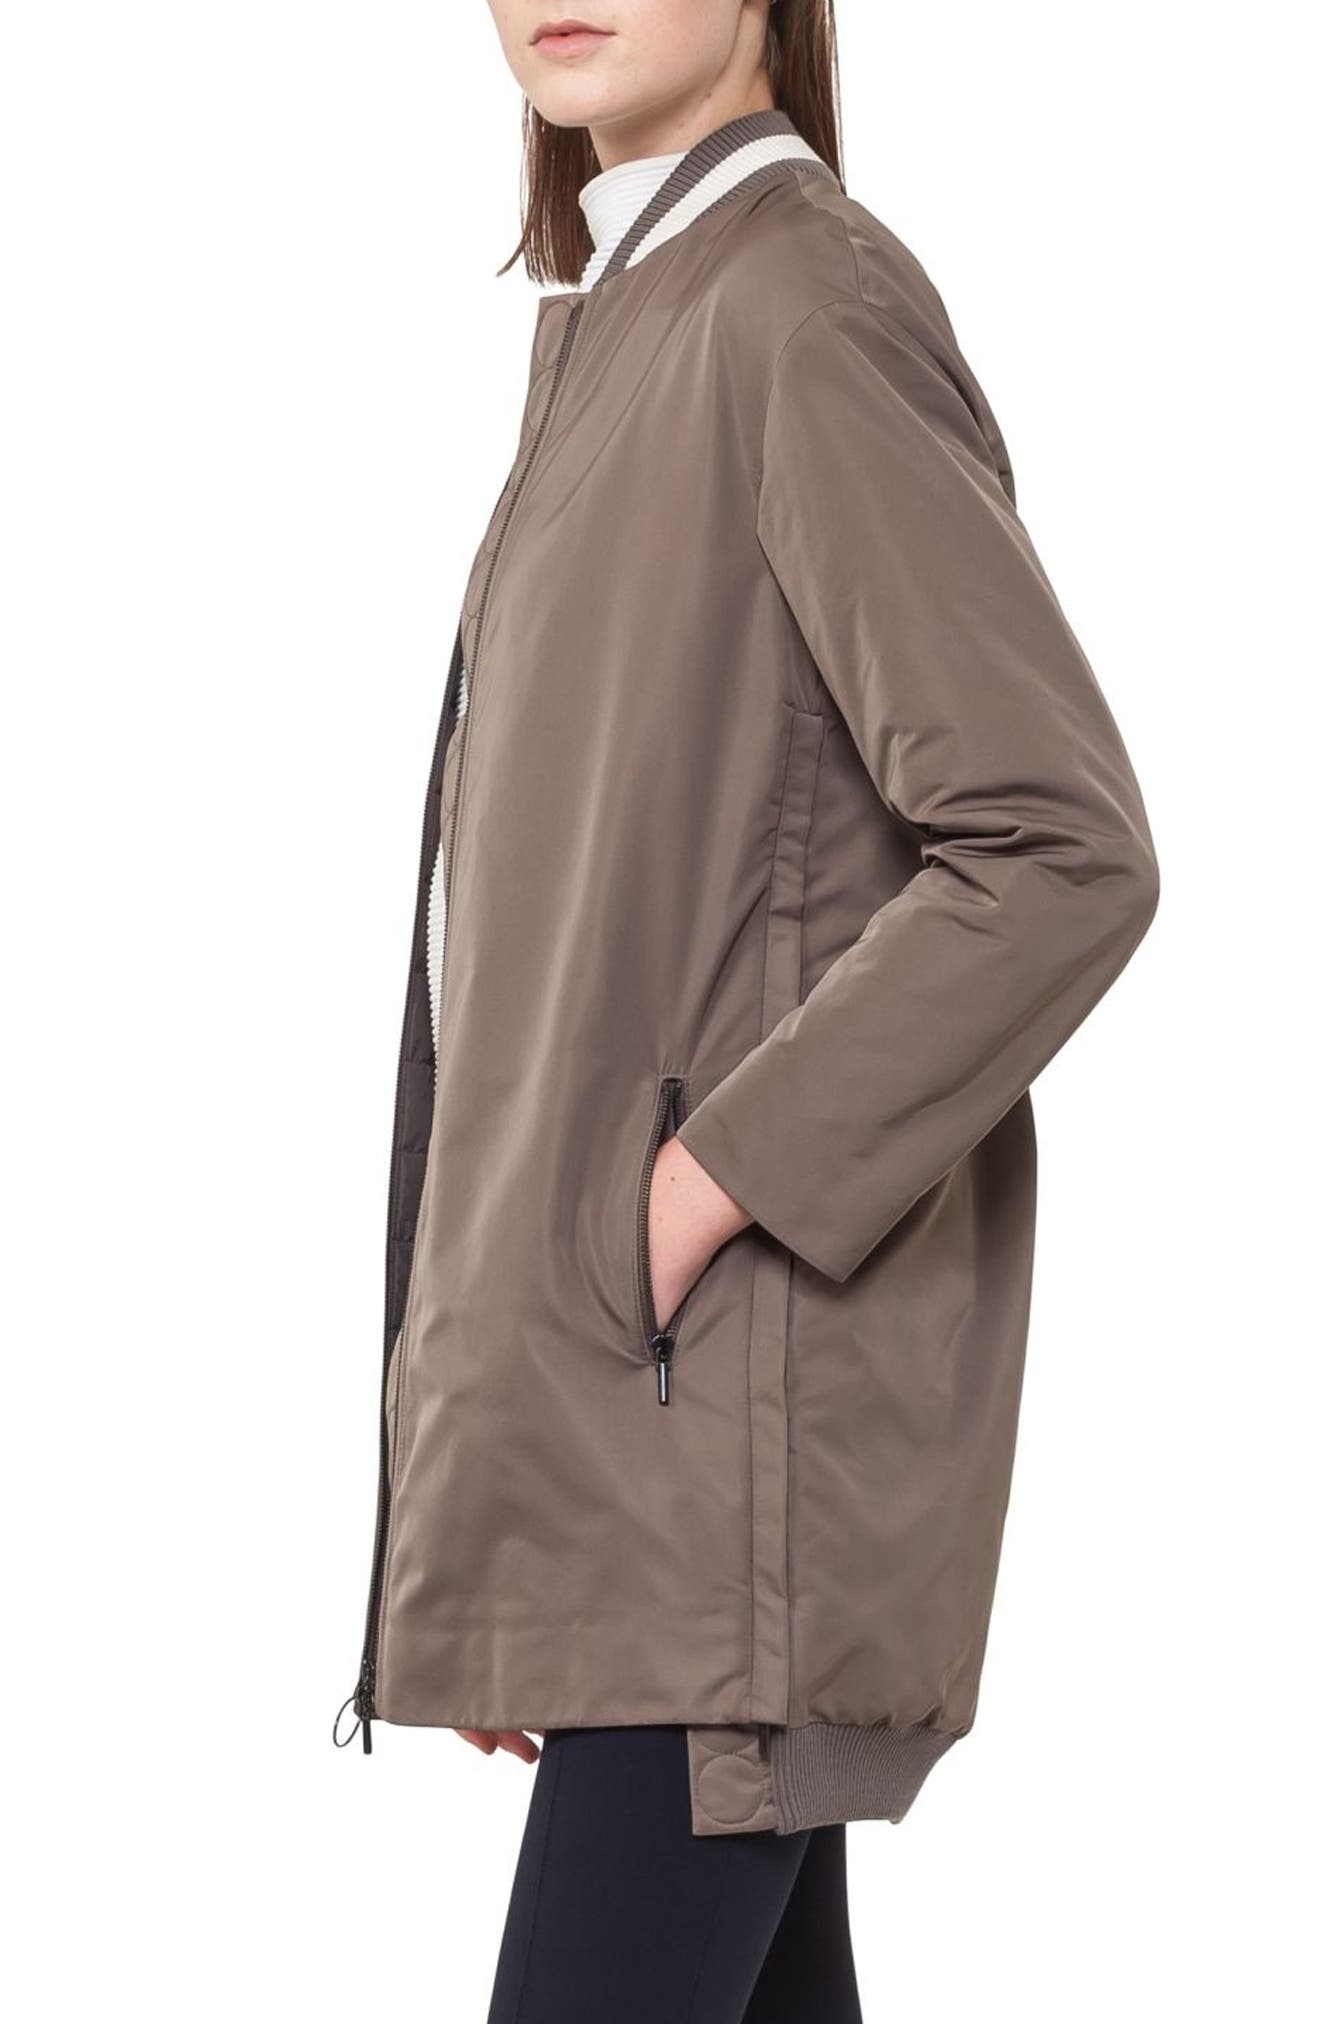 Techno Bomber Coat,                             Alternate thumbnail 3, color,                             Taupe